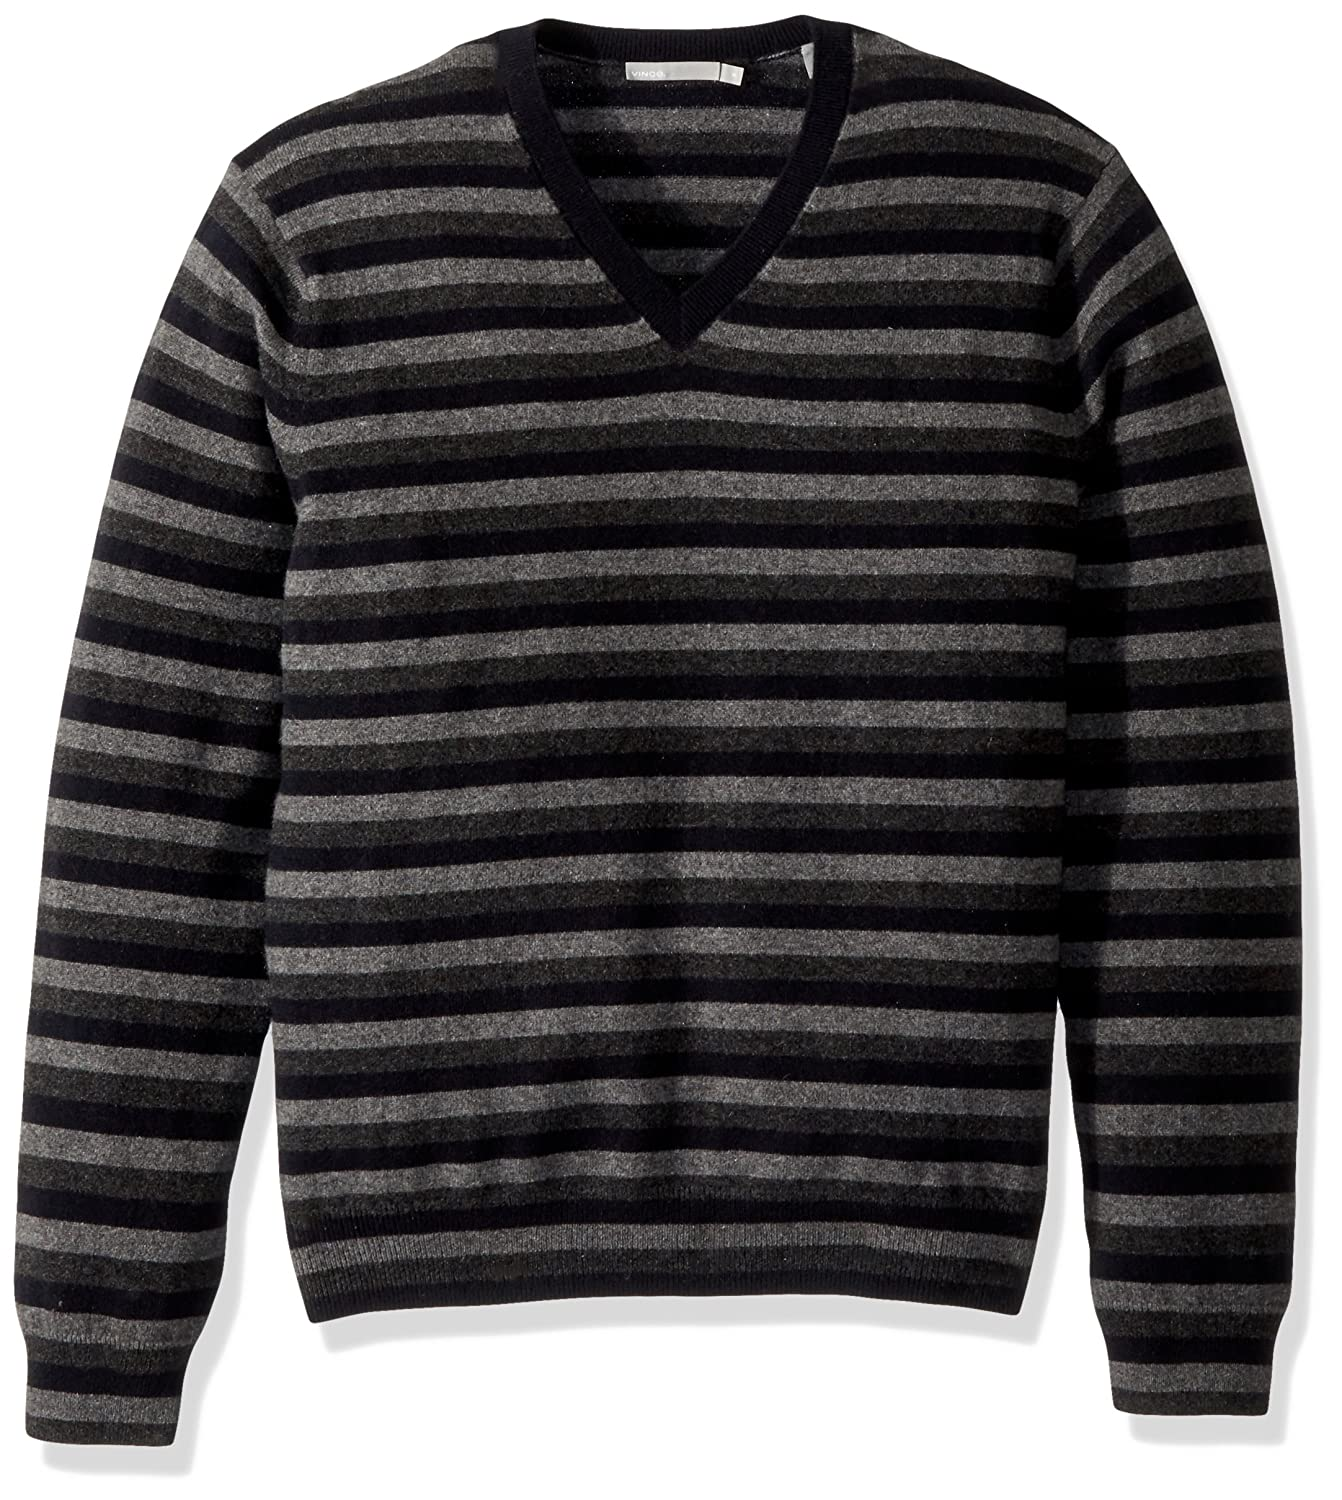 67bbd5f5439d Amazon.com: Vince Men's Striped Cashmere V-Neck Sweater: Clothing